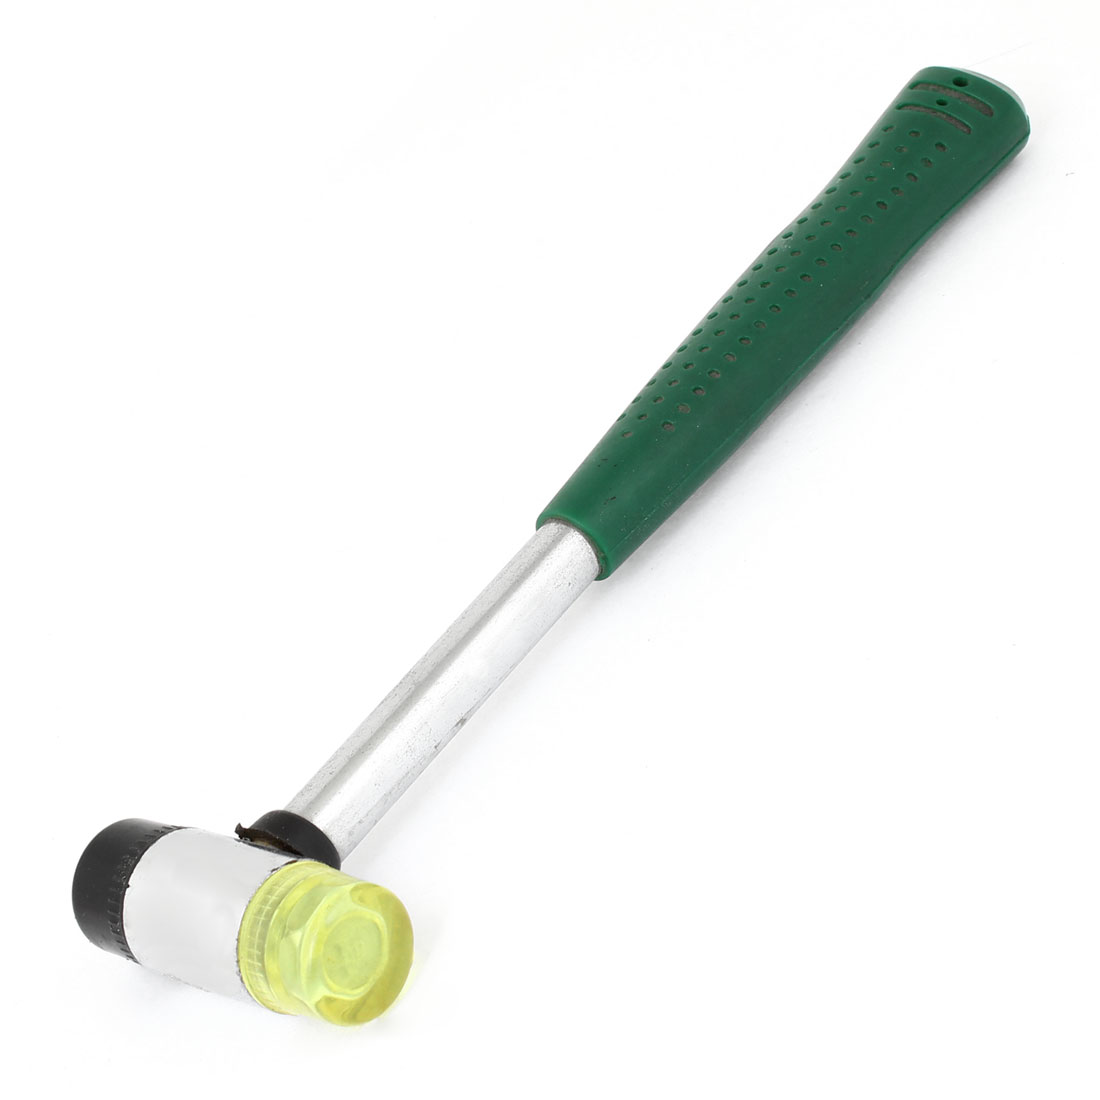 Green Rubber Coated Nonslip Handgrip Cylindrical Hammer Head Mallet Handy Tool